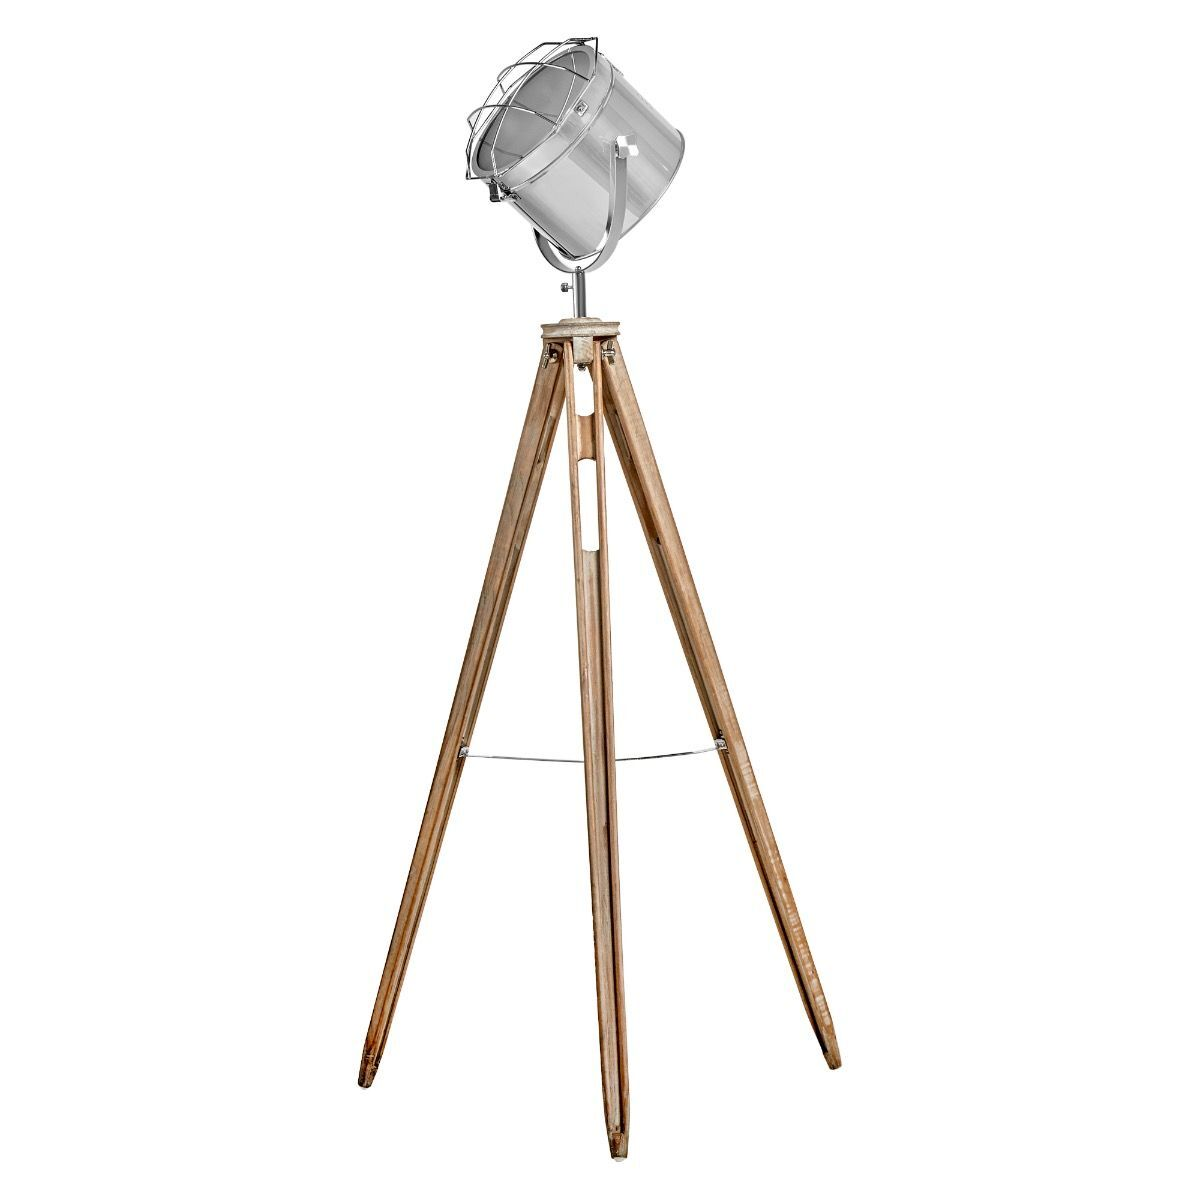 NAUTICAL TRIPOD FLOOR LAMP Searchlight Modern Spot Light Retro Industrial 75029 | Buy Floor Lamps - 9348750000293